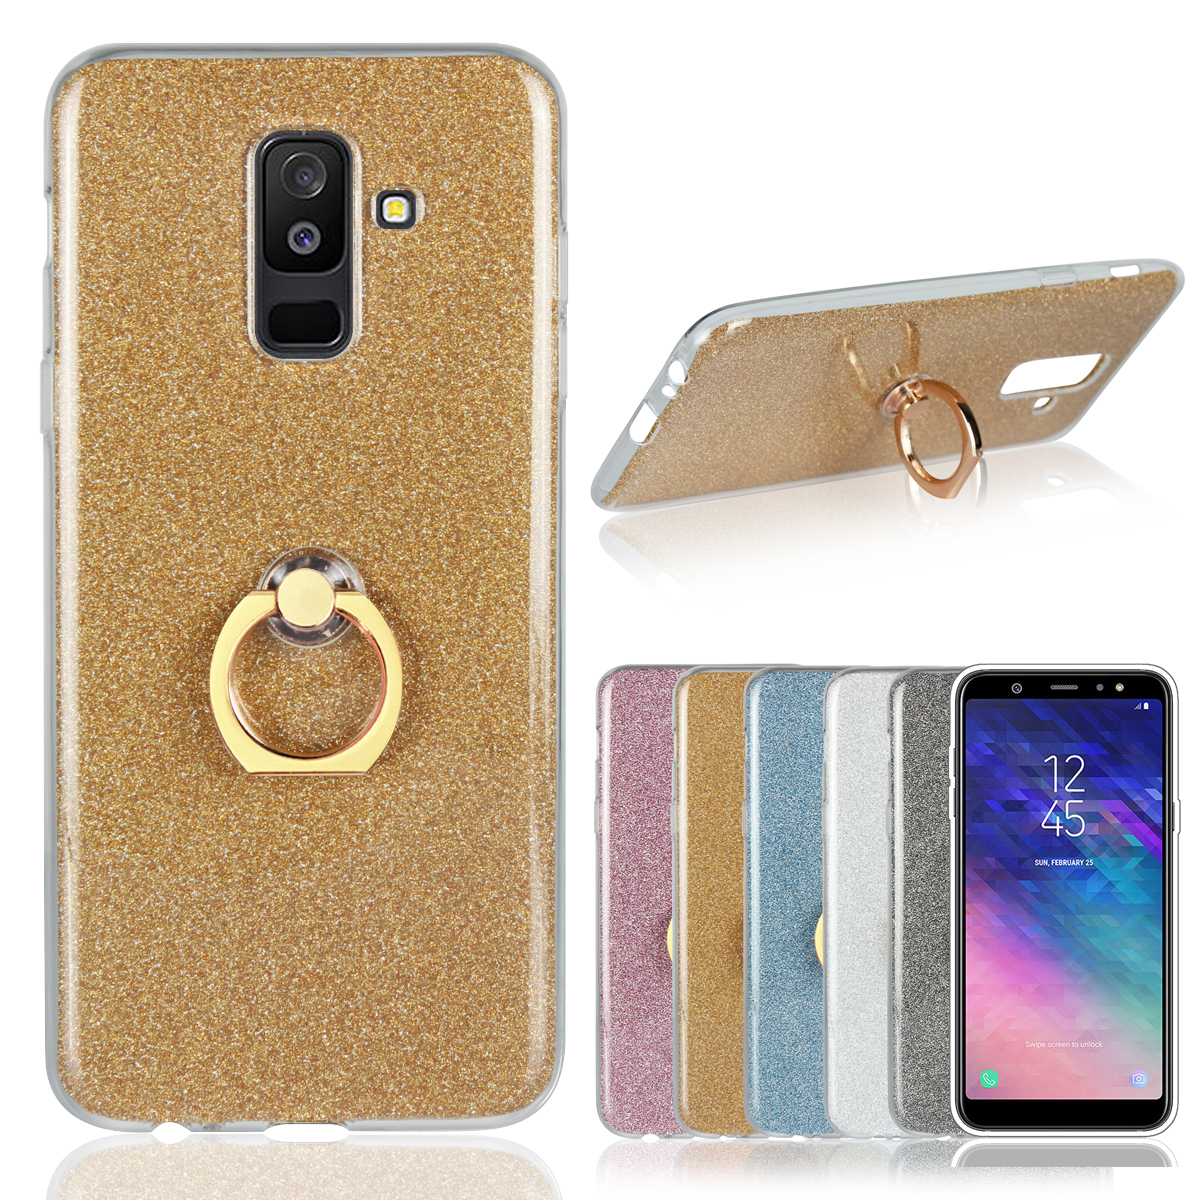 Soft Ring Phone Case for Samsung Galaxy A series A6 A8 Plus A9 Pro A3 A5 A7 2018 Finger Holder Support Bling Cover TPU Rubber